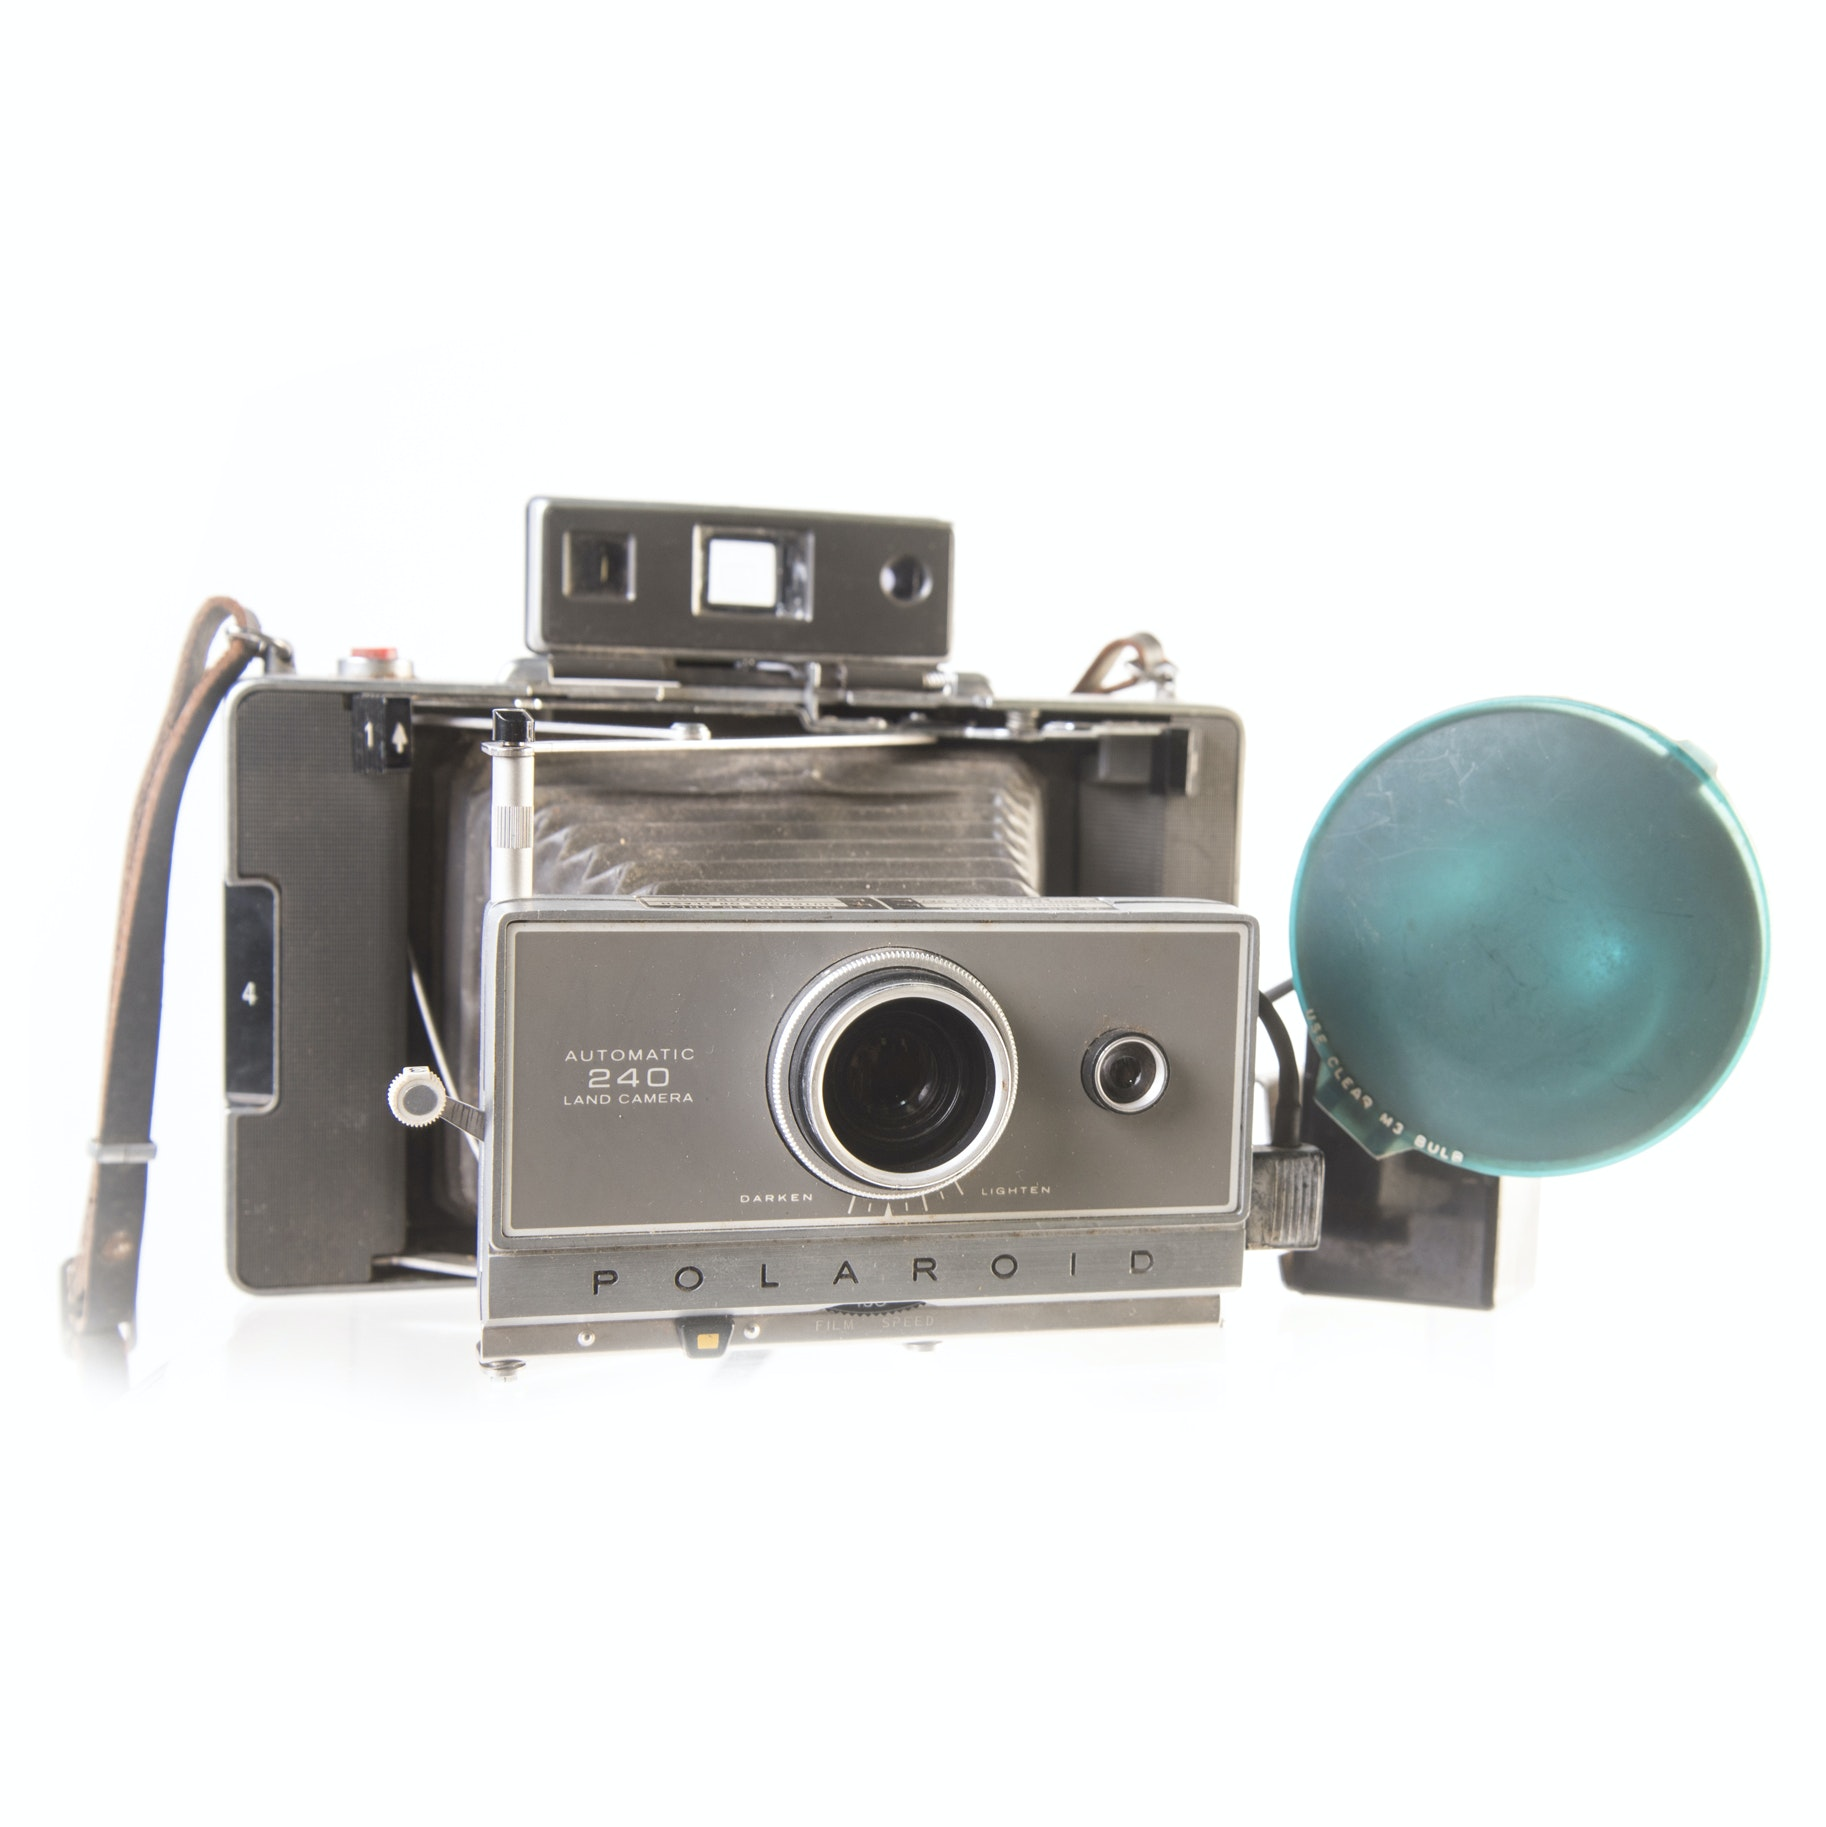 Vintage Automatic 240 Polaroid Land Camera and Accessories